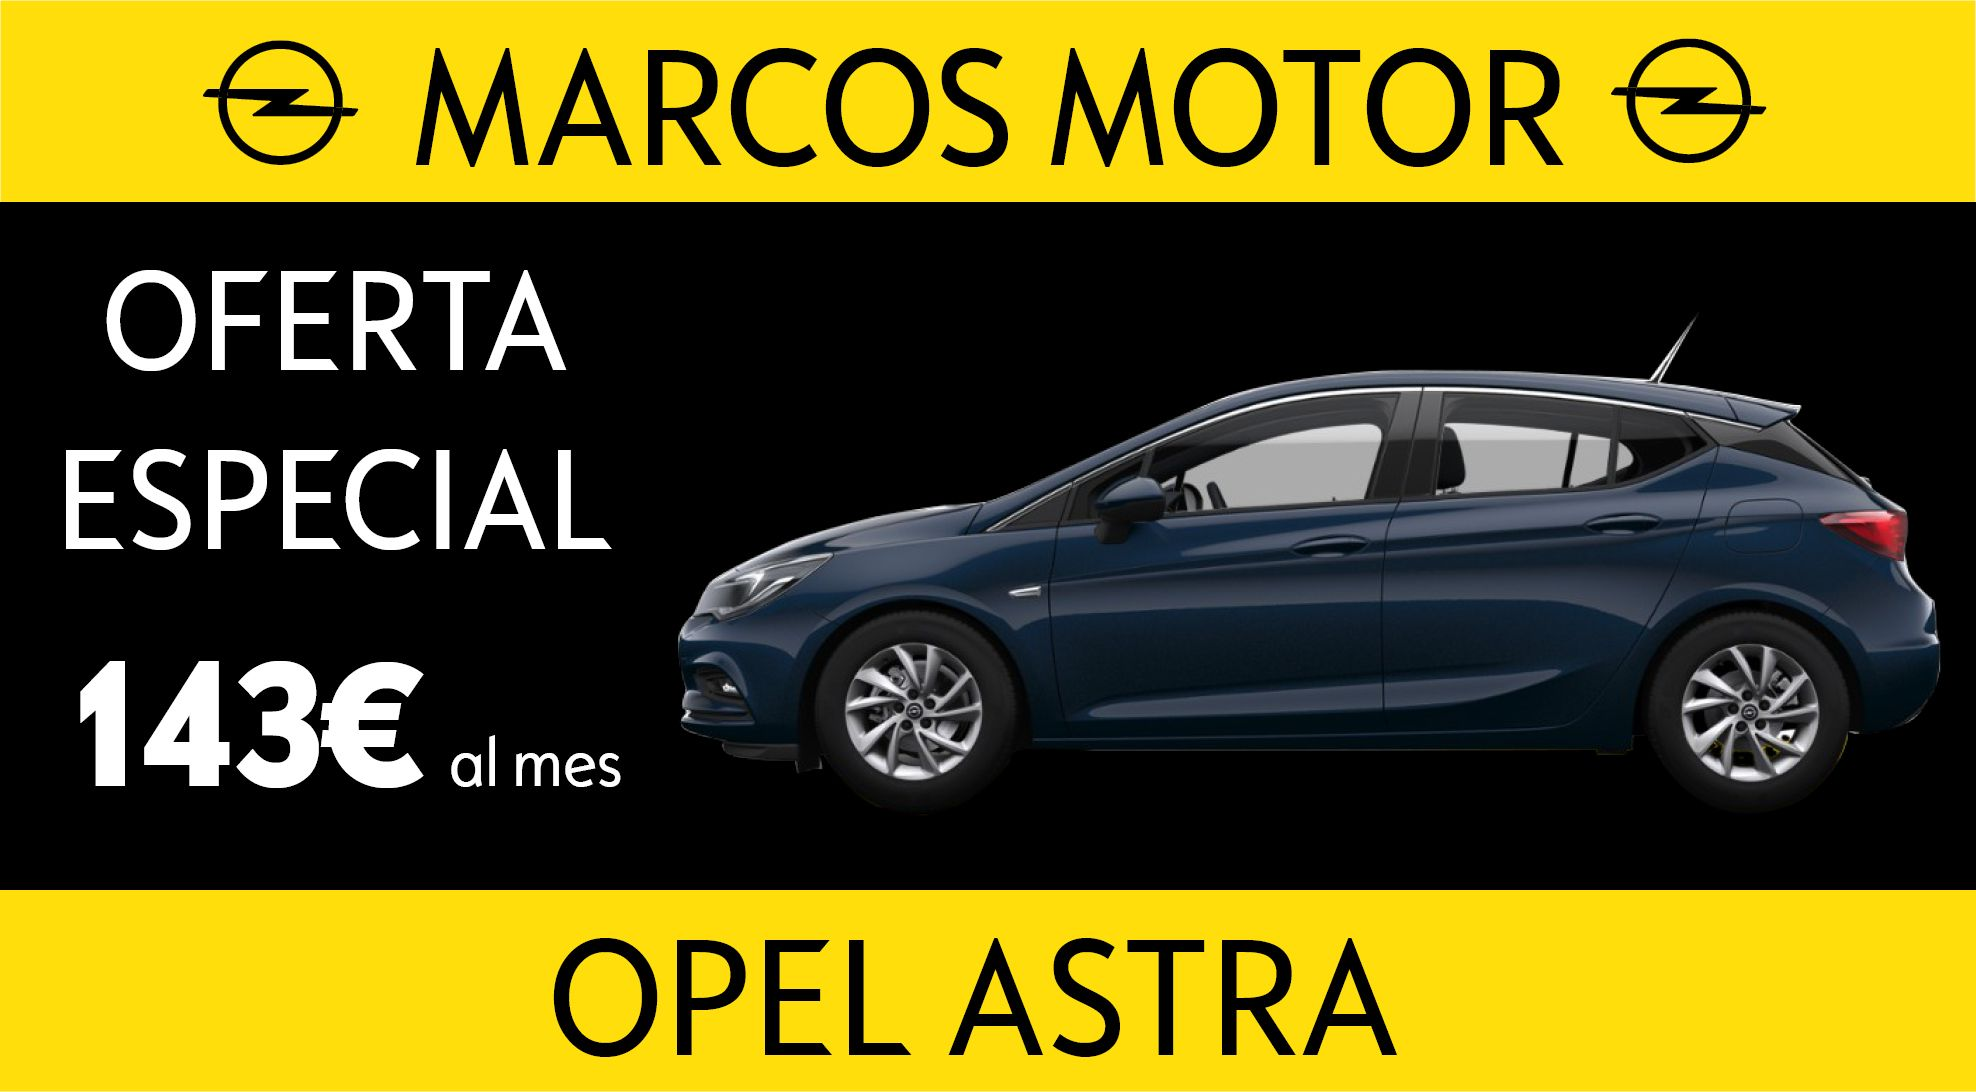 Opel Astra Offer € 143 per month